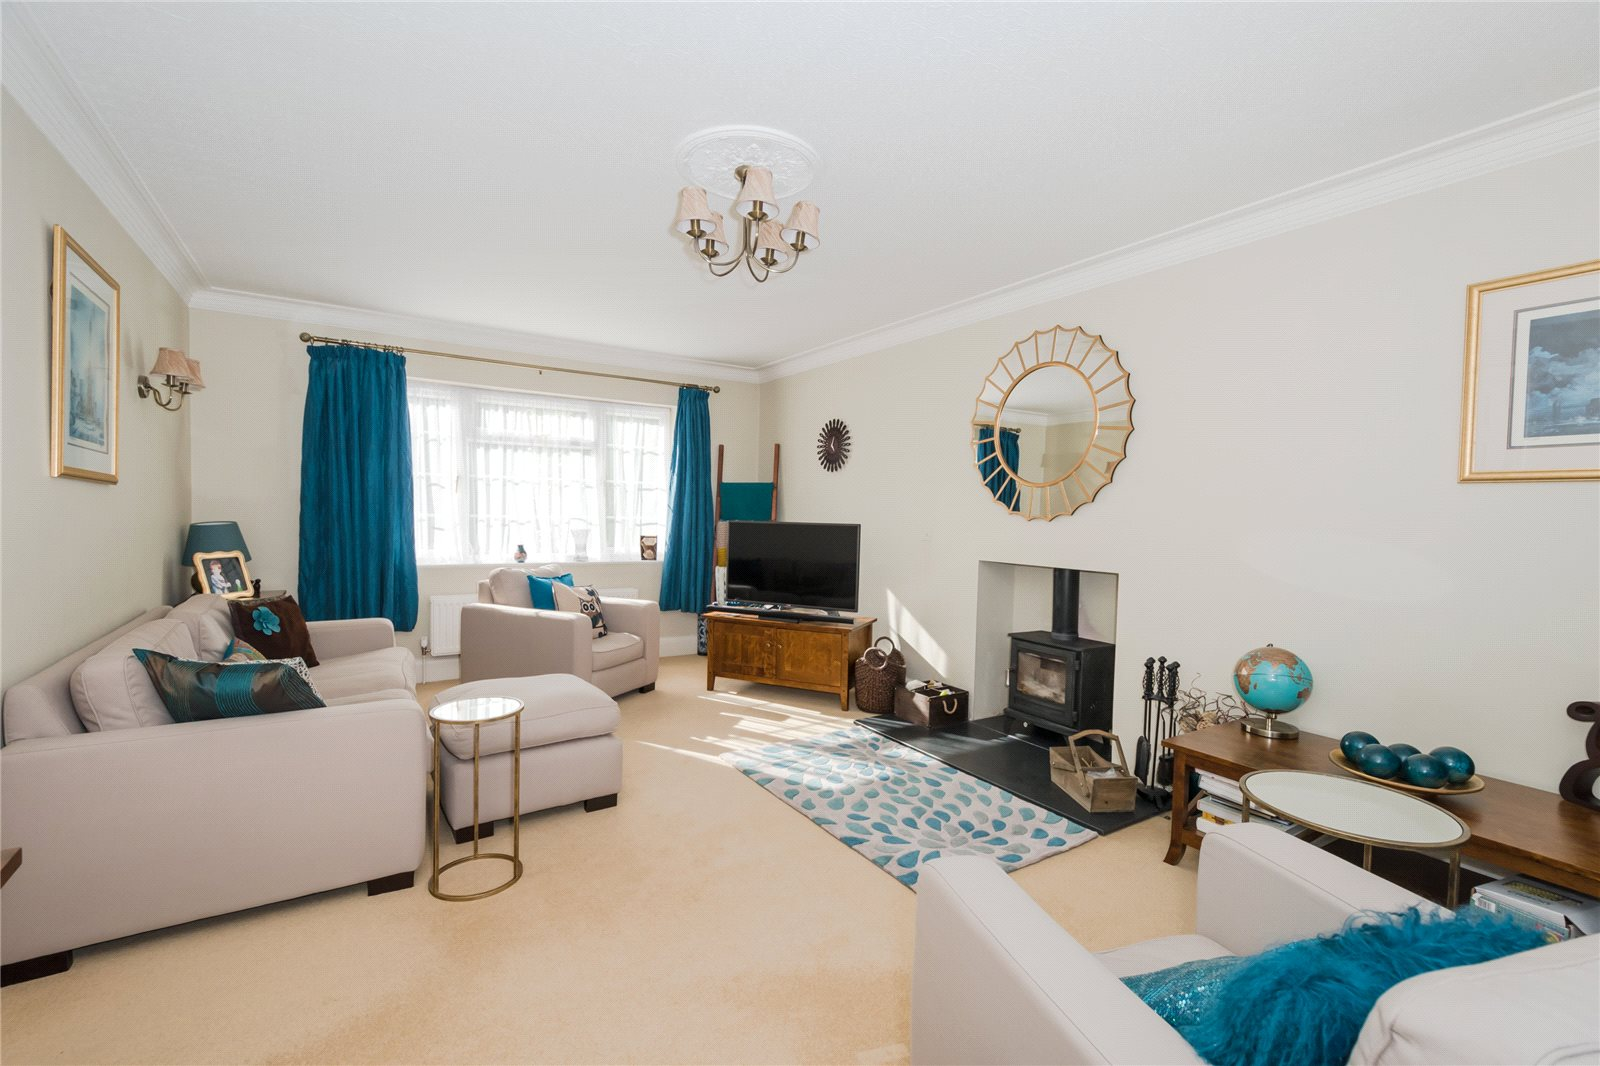 Additional photo for property listing at Priory Road, Chalfont St Peter, Buckinghamshire, SL9 Chalfont St Peter, England